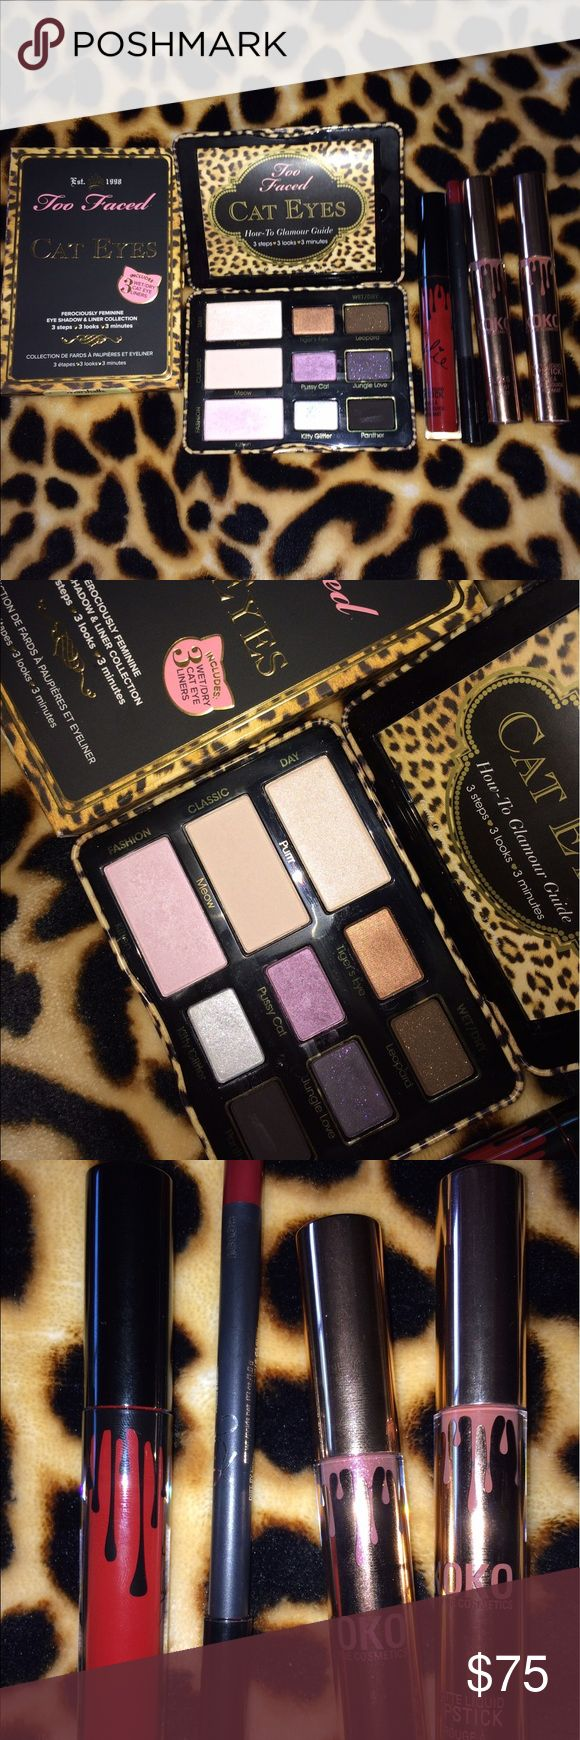 Make up Bundle KYLIE TWO Faced Cat Eyes NEW REAL Authentic two faced cat eyes eye shadow palette with how to booklet to accomplish any look in box. Was only swatches. 3 authentic Kylie Matte lip colors and one matching lip liner. Mary jo K w/ matching liner Damn Gina and khlos New never used. Kylie Cosmetics Makeup Eyeshadow